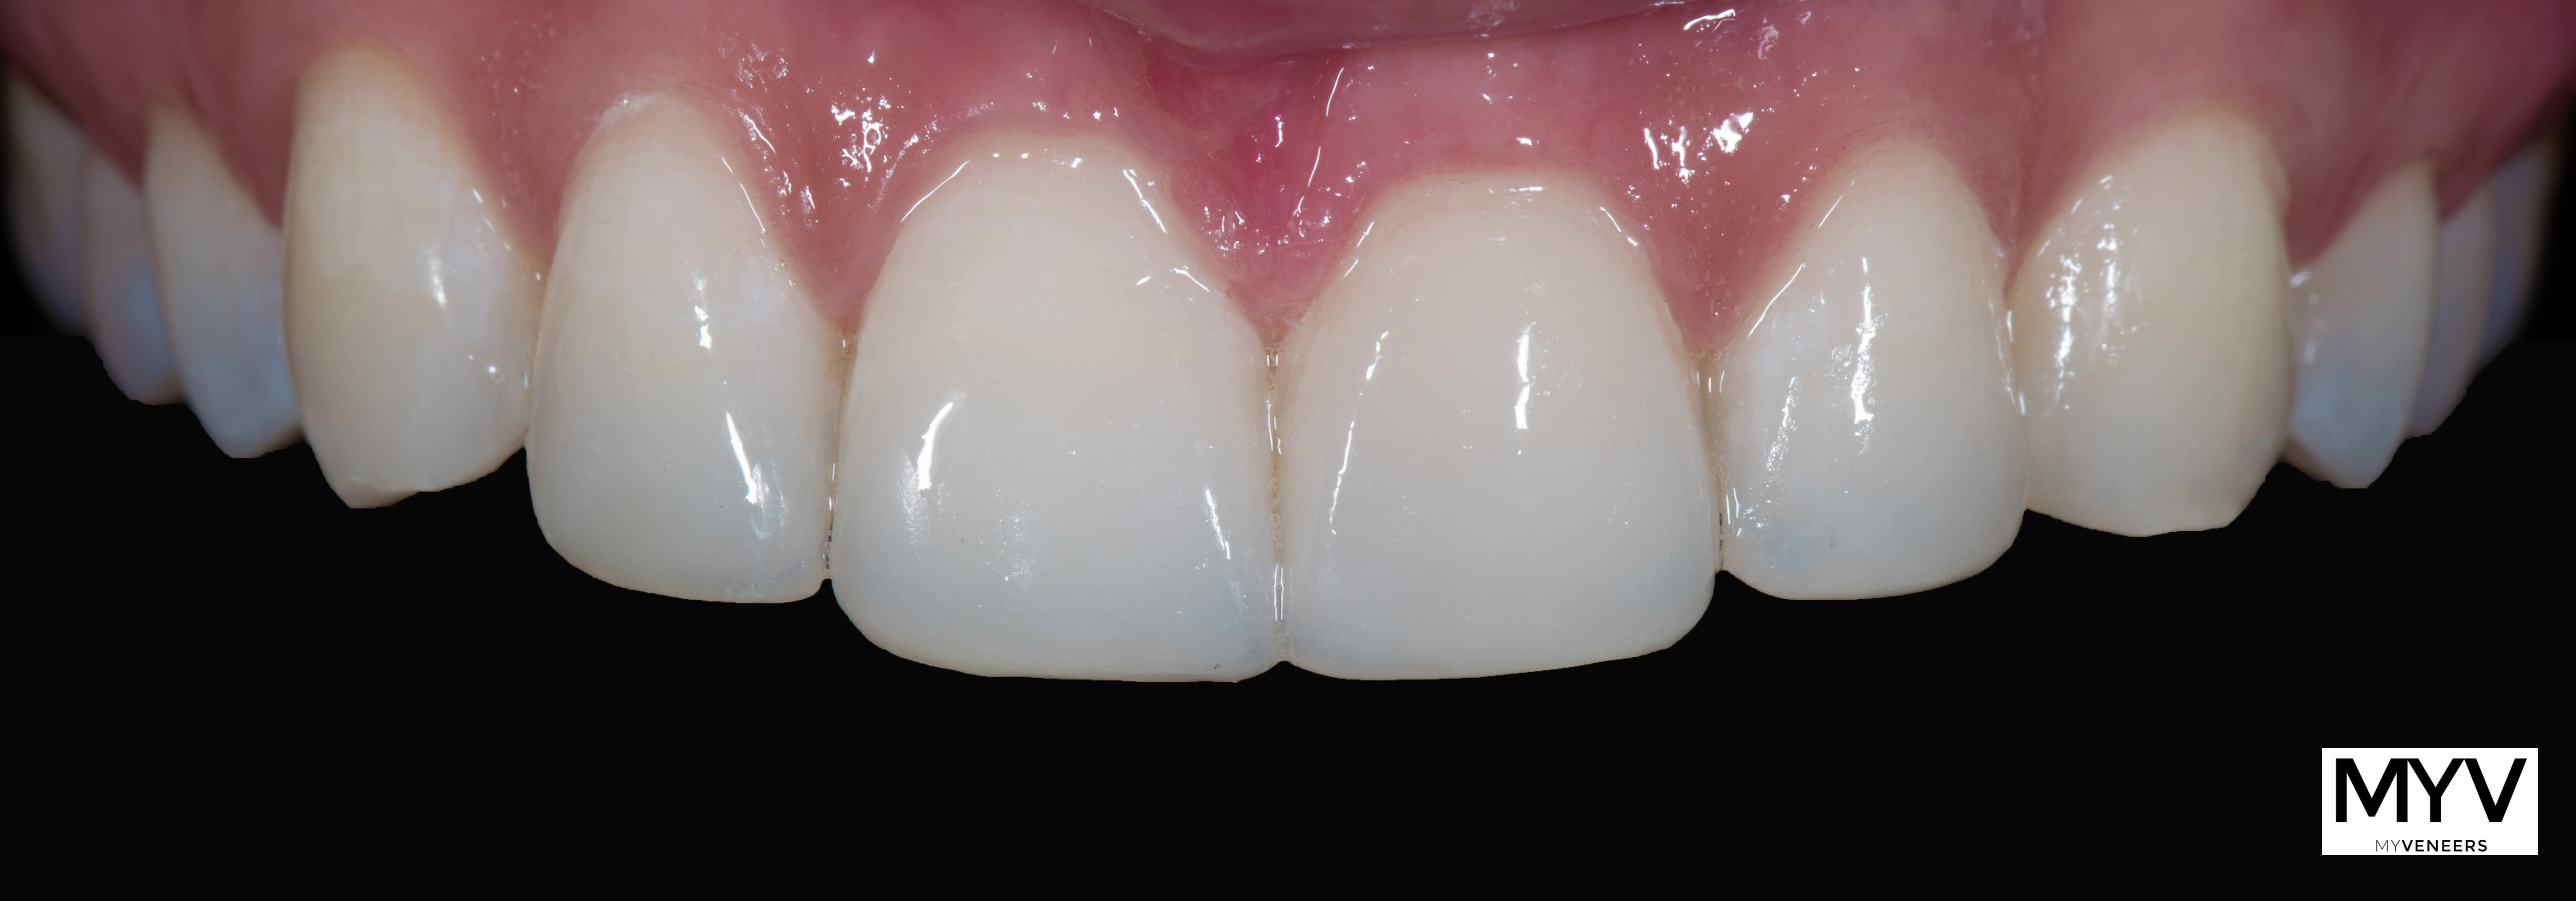 Veneers nach 2 Monaten in situ (intraoral und en face)